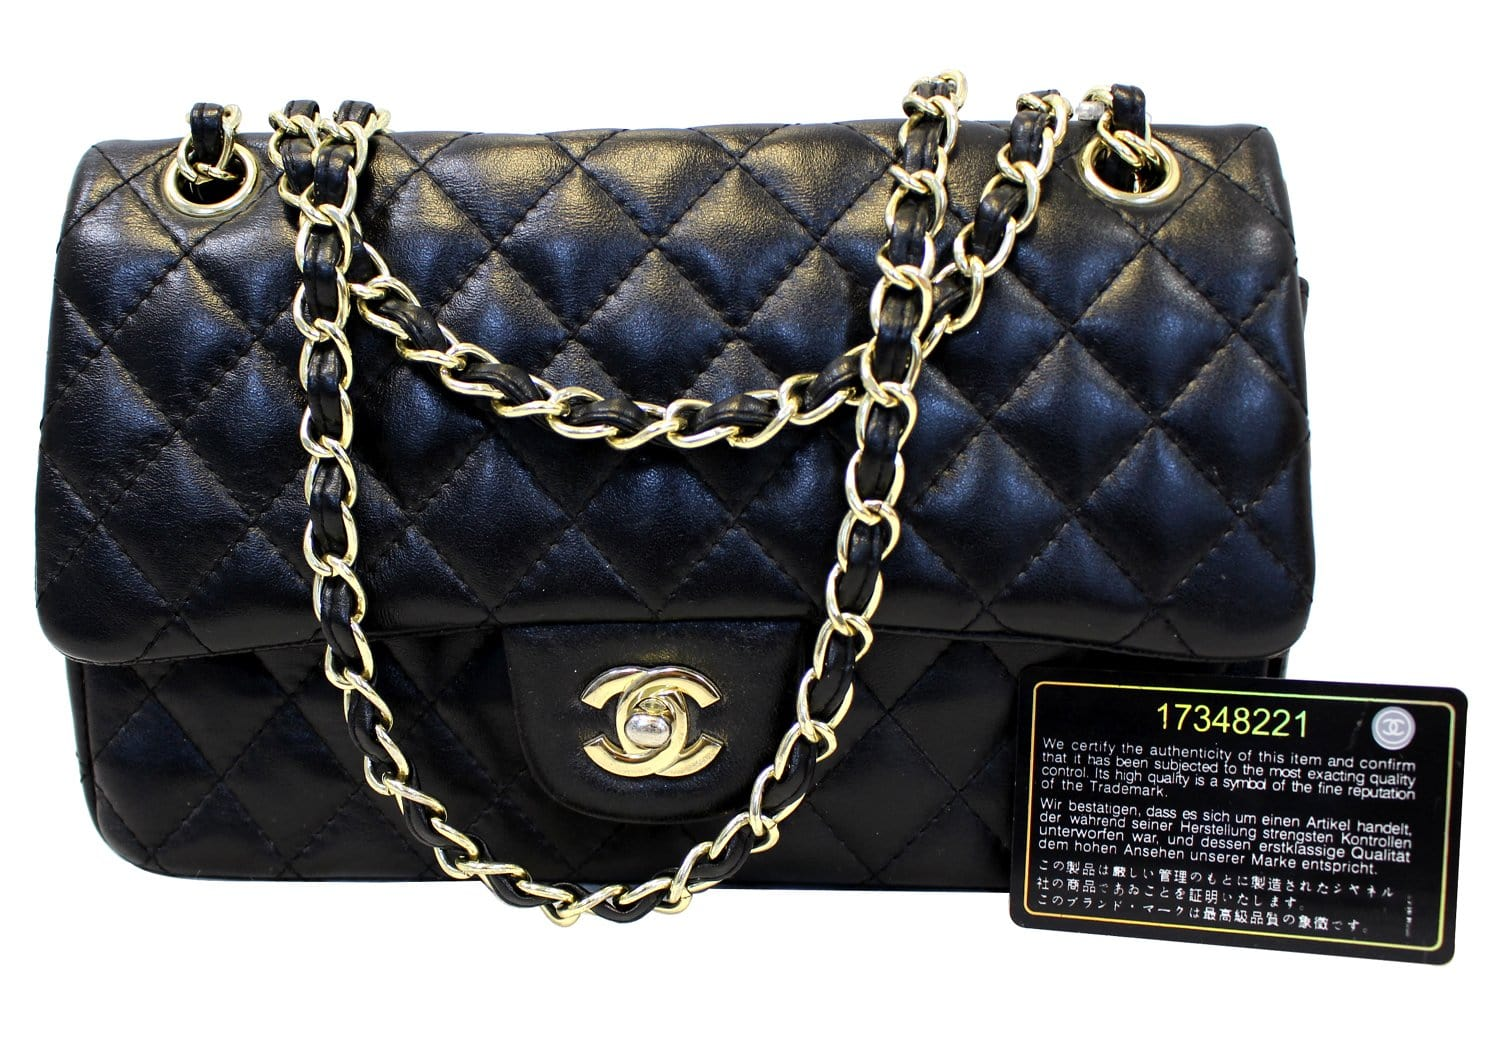 56a9b7ba0cd392 CHANEL Quilted Lambskin Leather Double Flap Classic Medium Black Bag